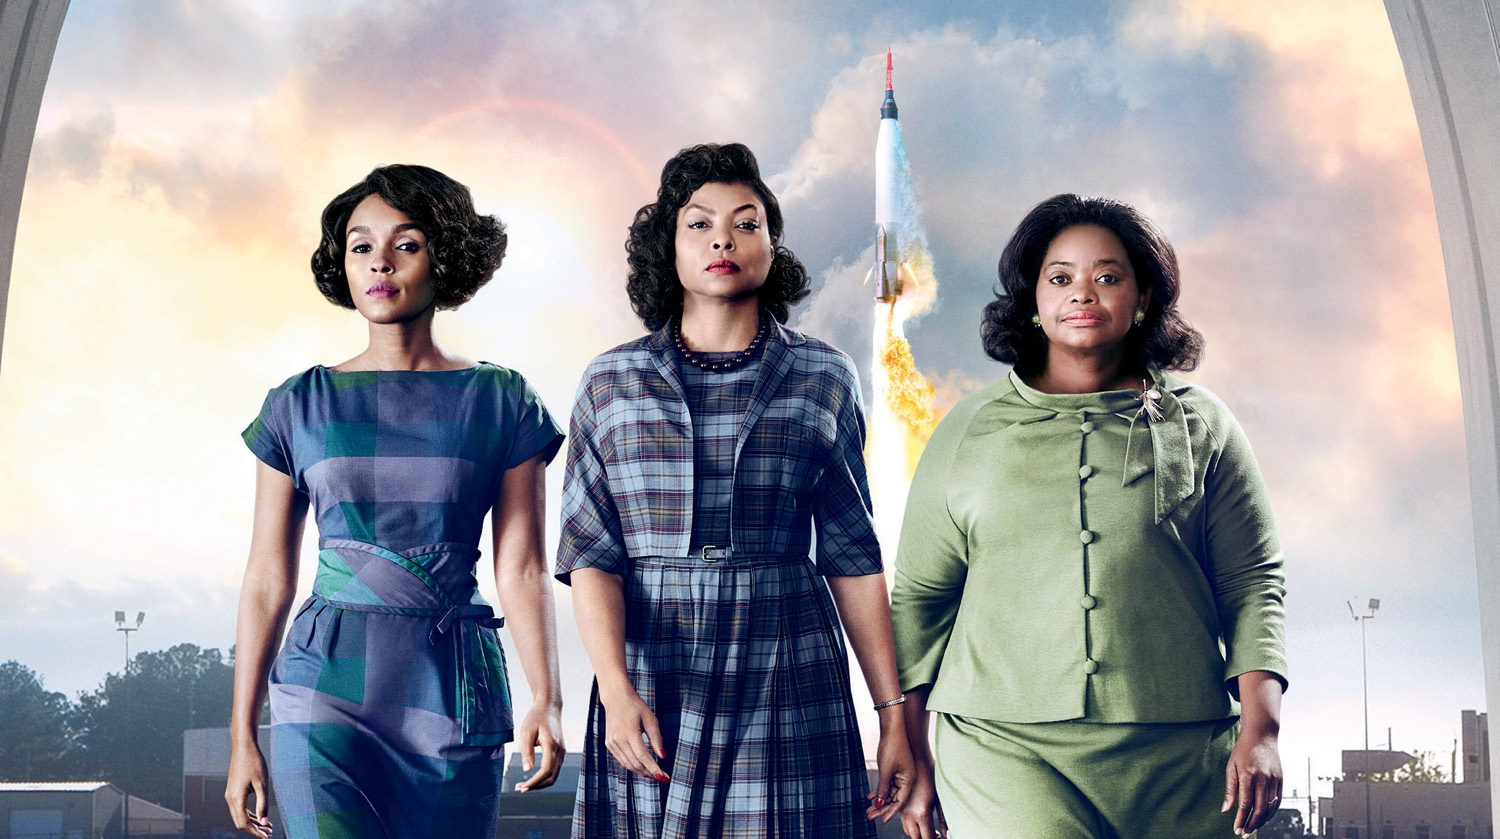 """Taraji P. Henson just got emotional about her new character in """"Hidden Figures"""" and we are here for it"""